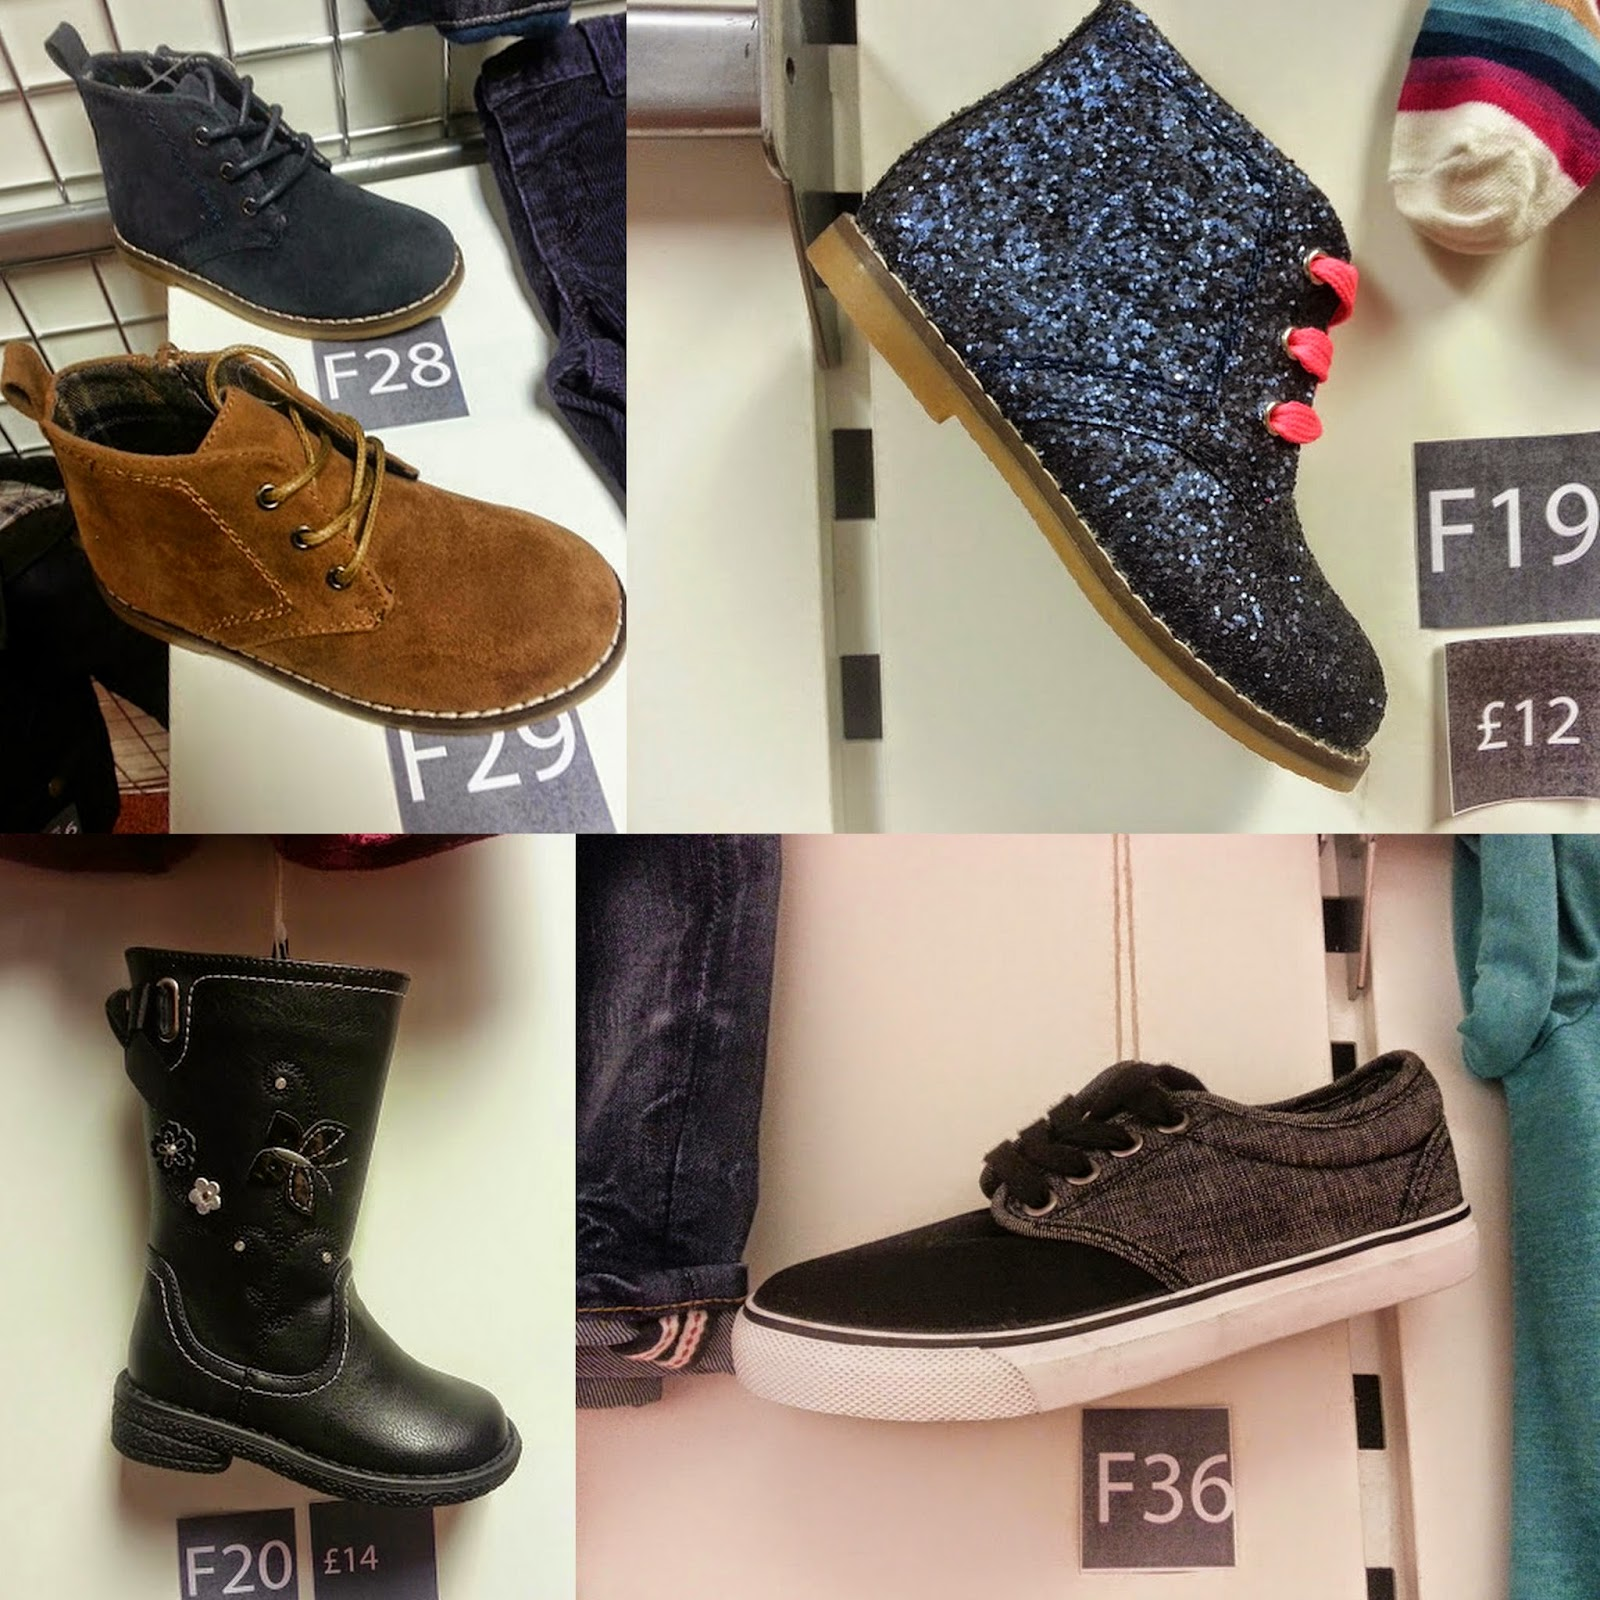 Matalan UK Autumn Winter 2014 younger children's shoes range